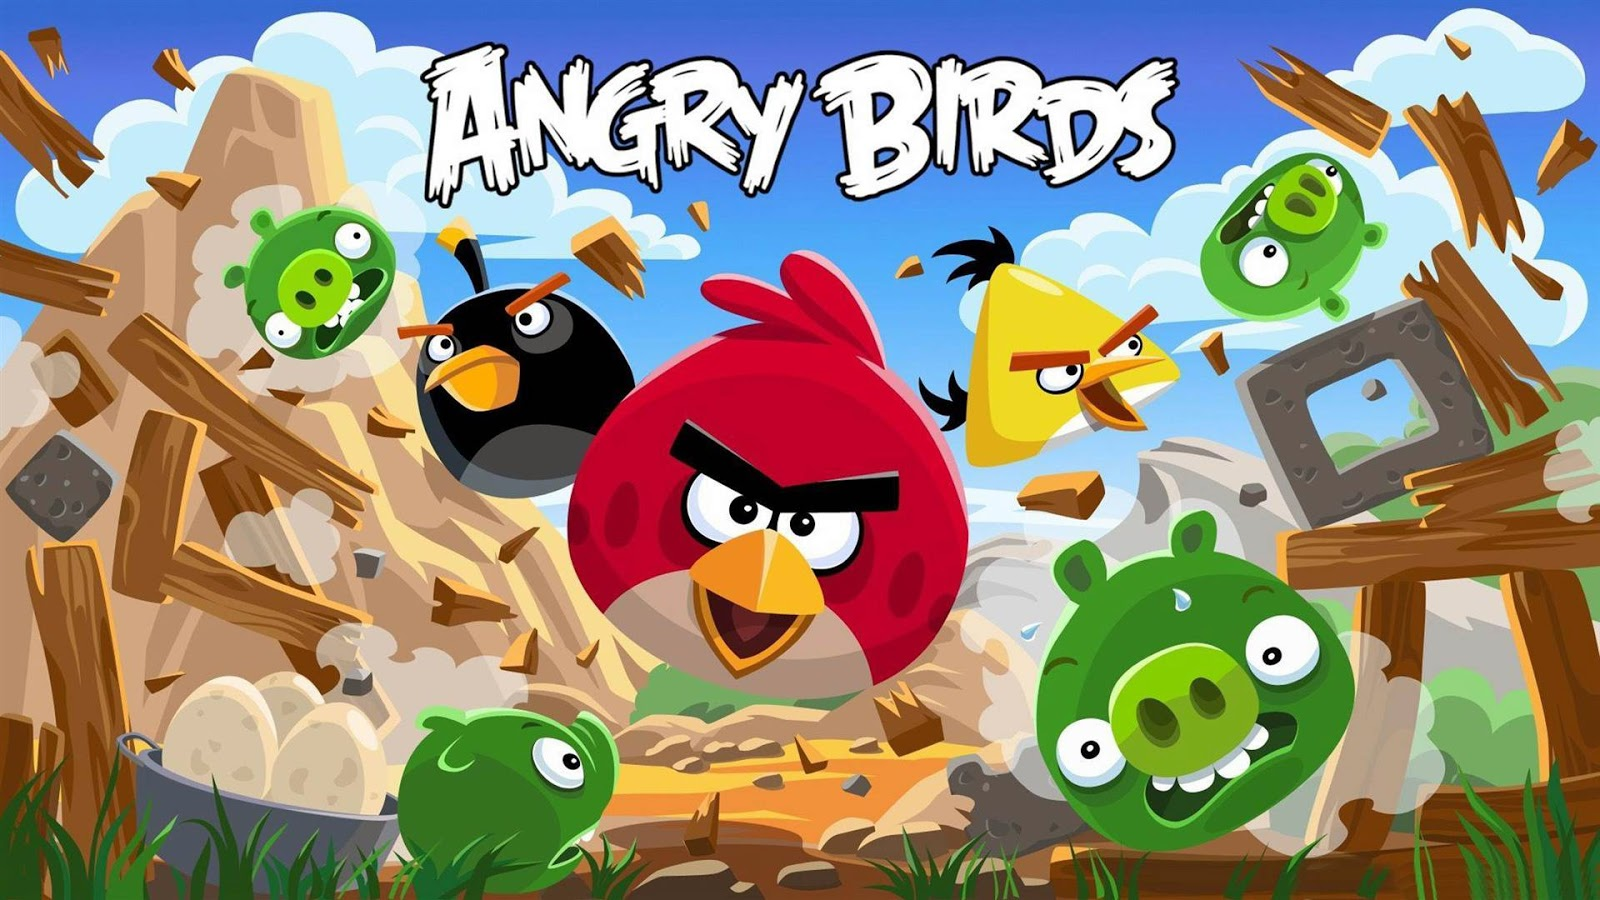 Angry Birds Background wallpaper